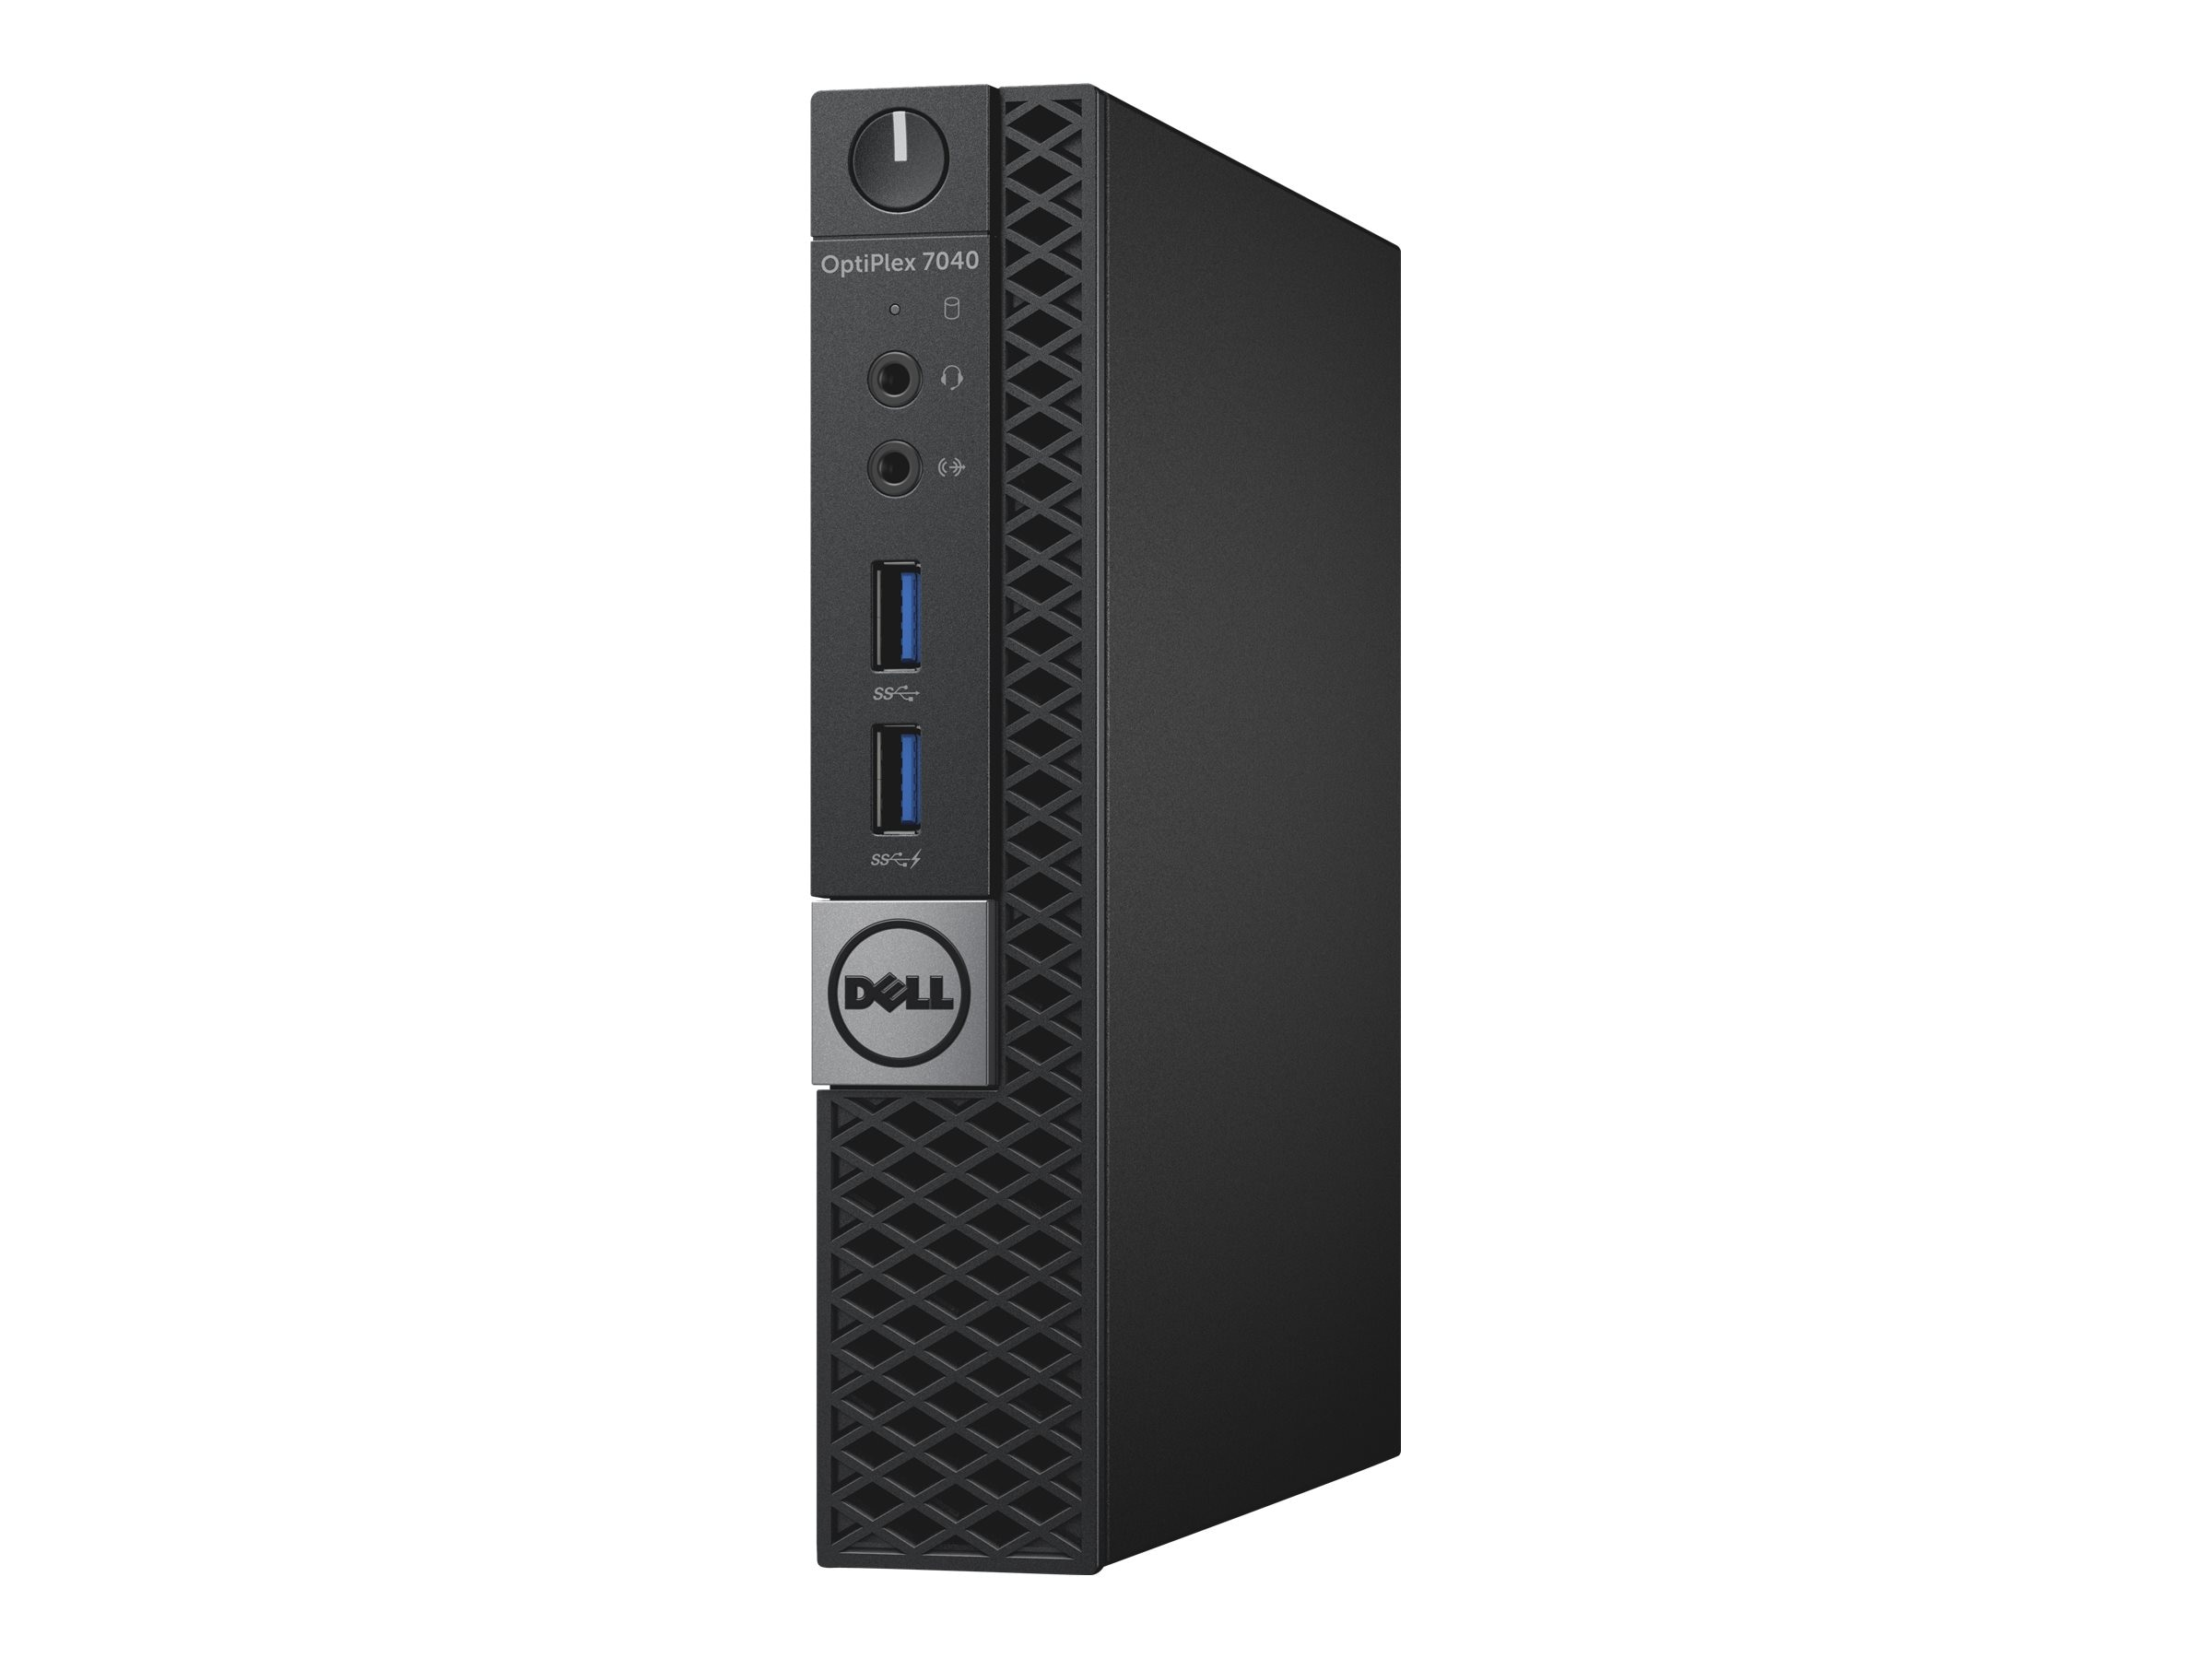 Dell OptiPlex 7040 2.5GHz Core i5 4GB RAM 500GB hard drive